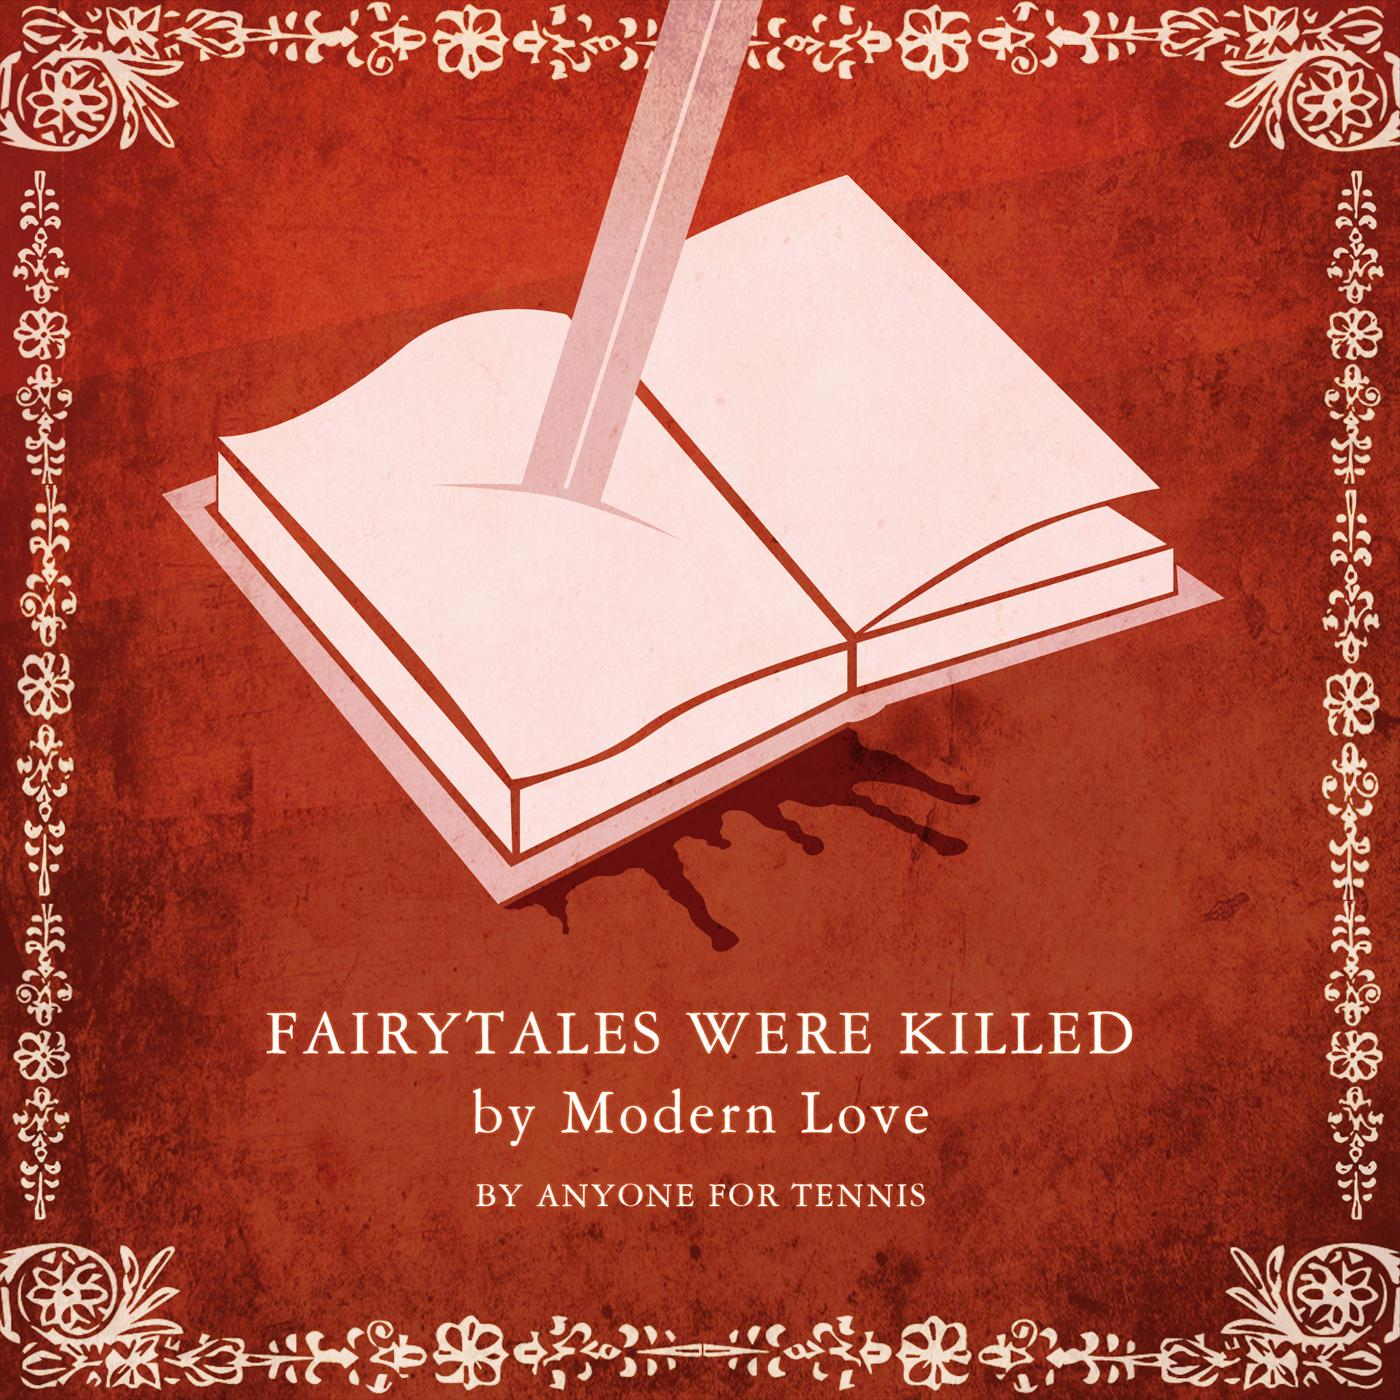 Fairytales were killed by modern love